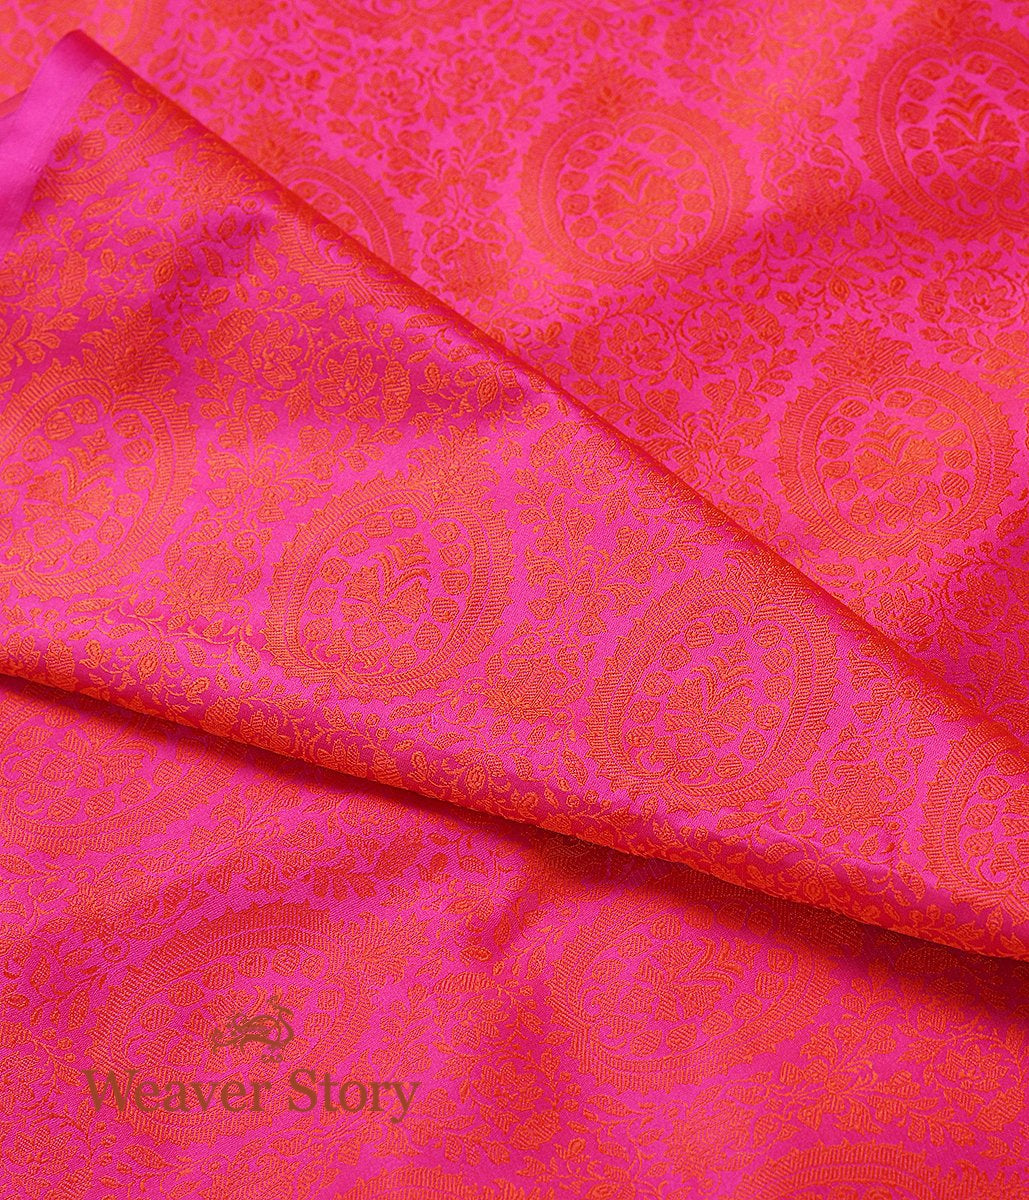 Handwoven Hot Pink Self Tanchoi Fabric